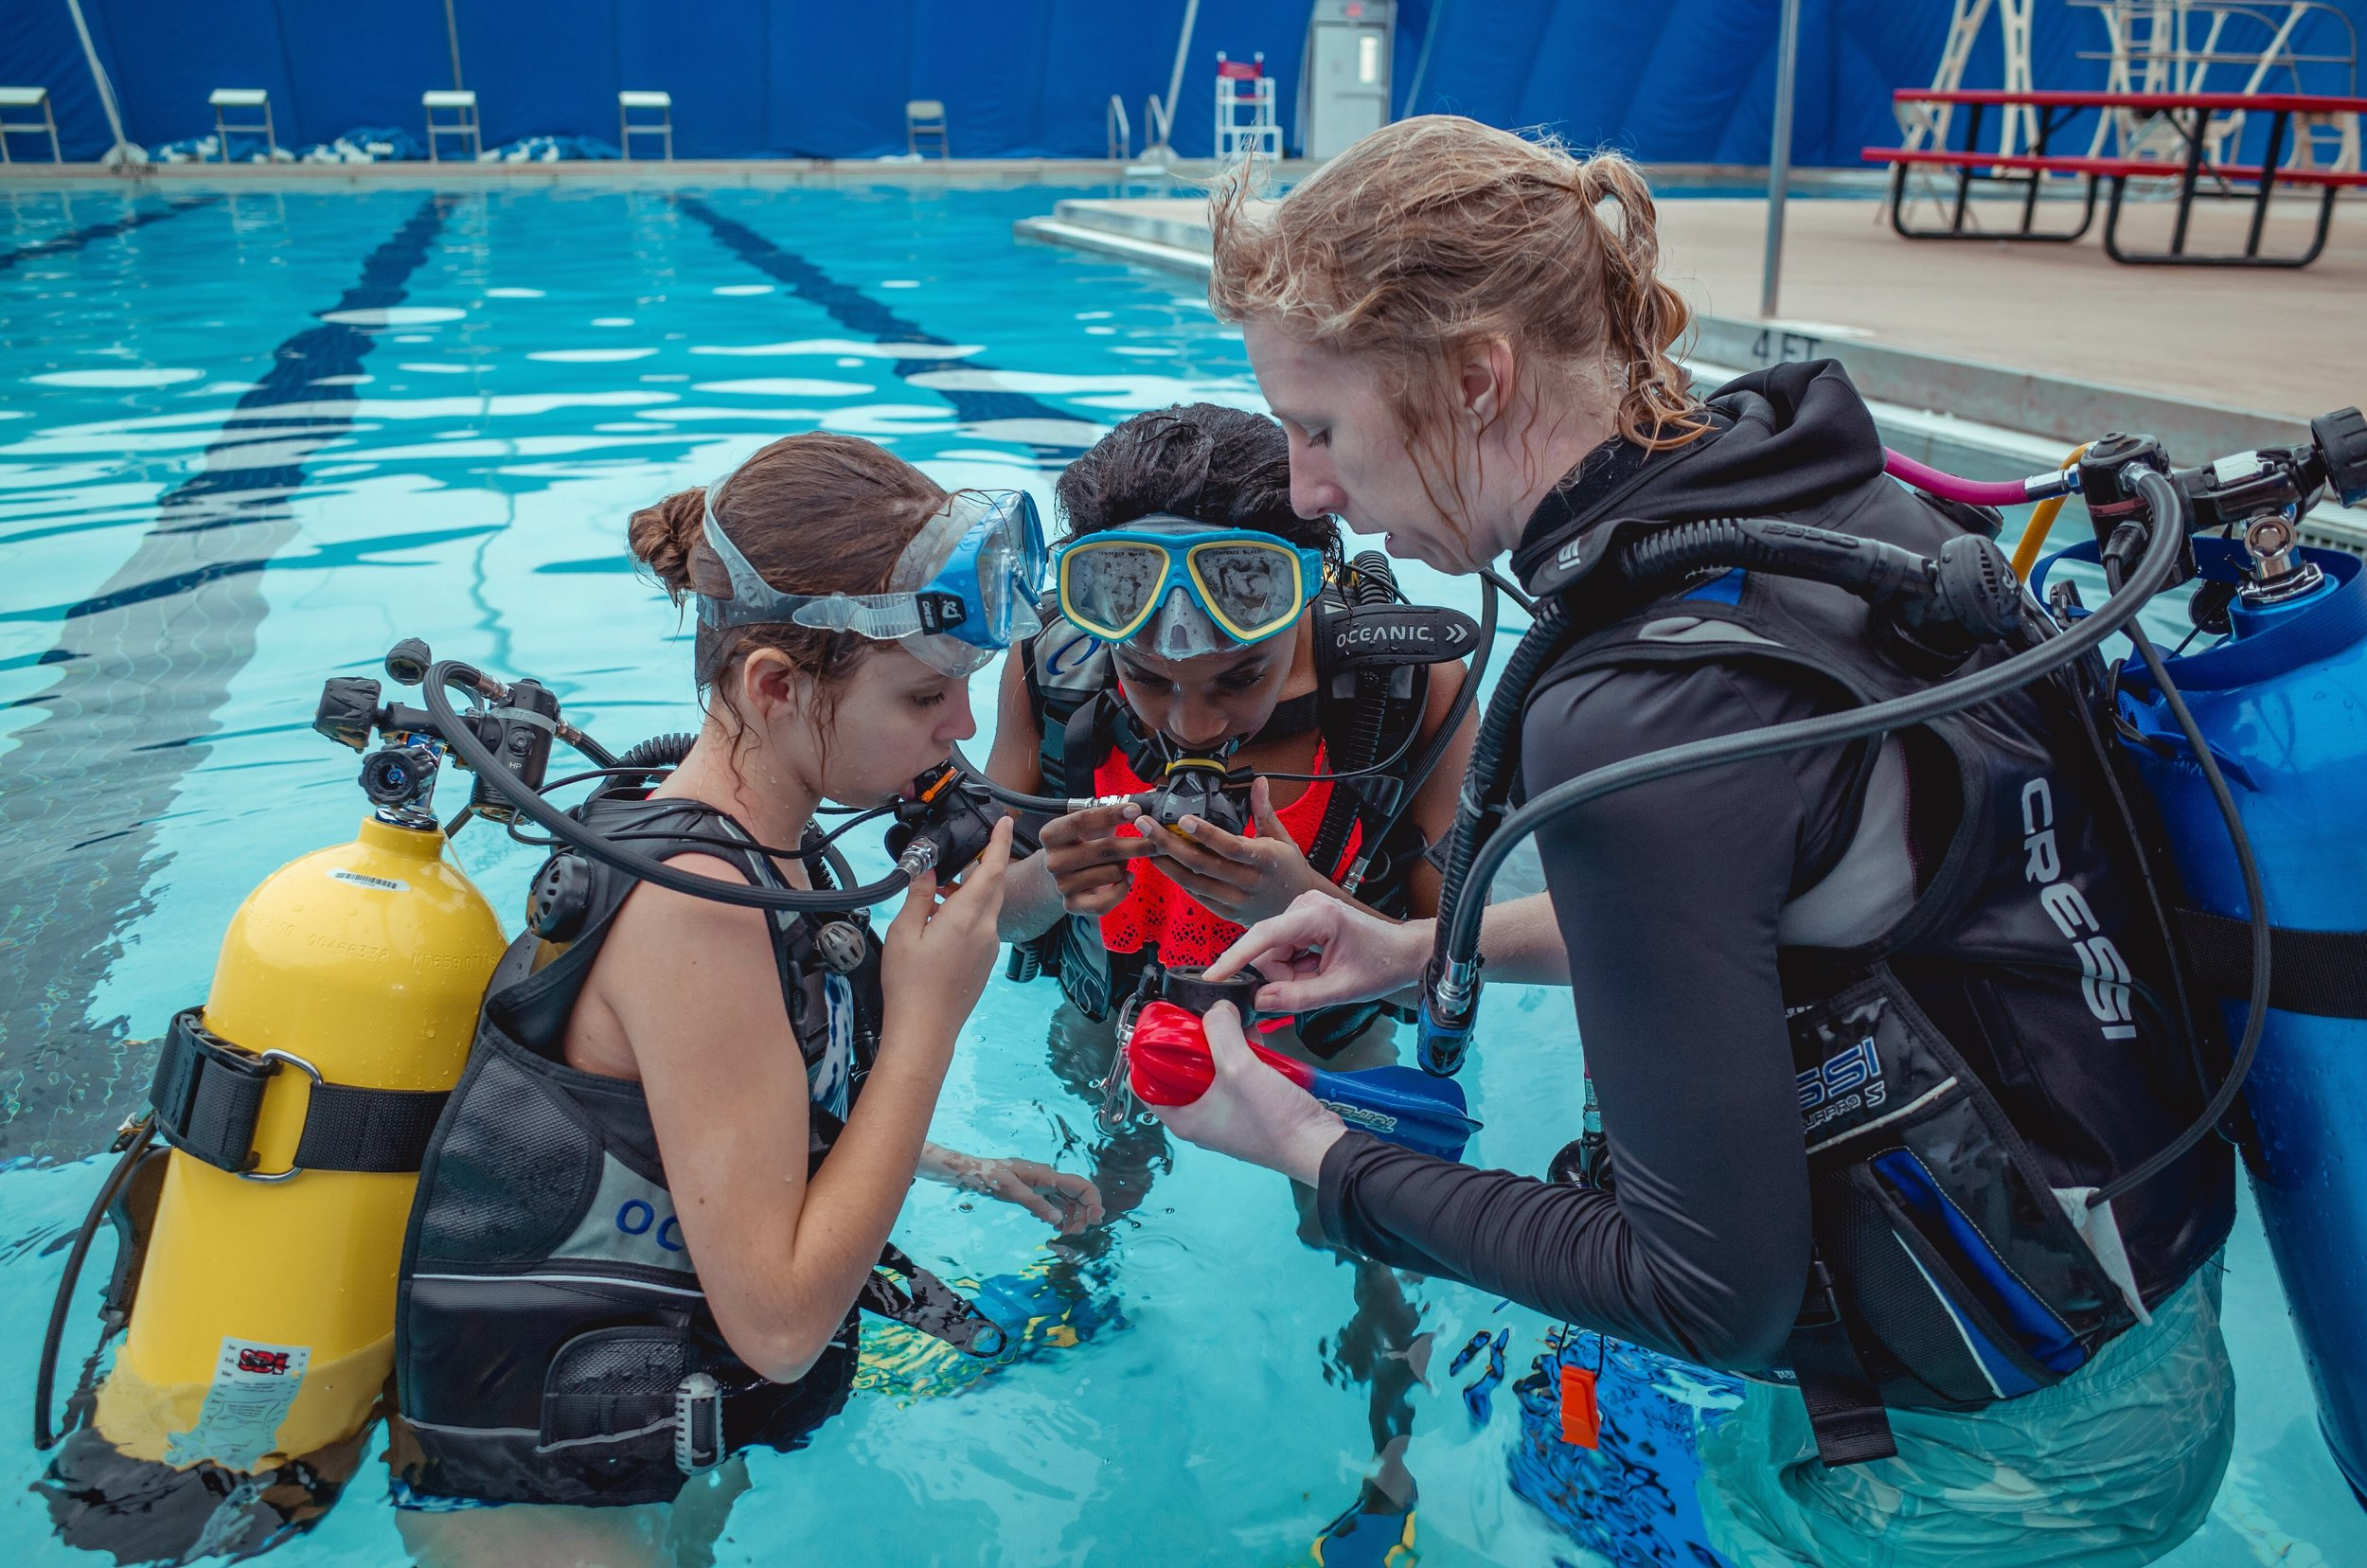 Scuba Classes - Learn to Scuba Dive